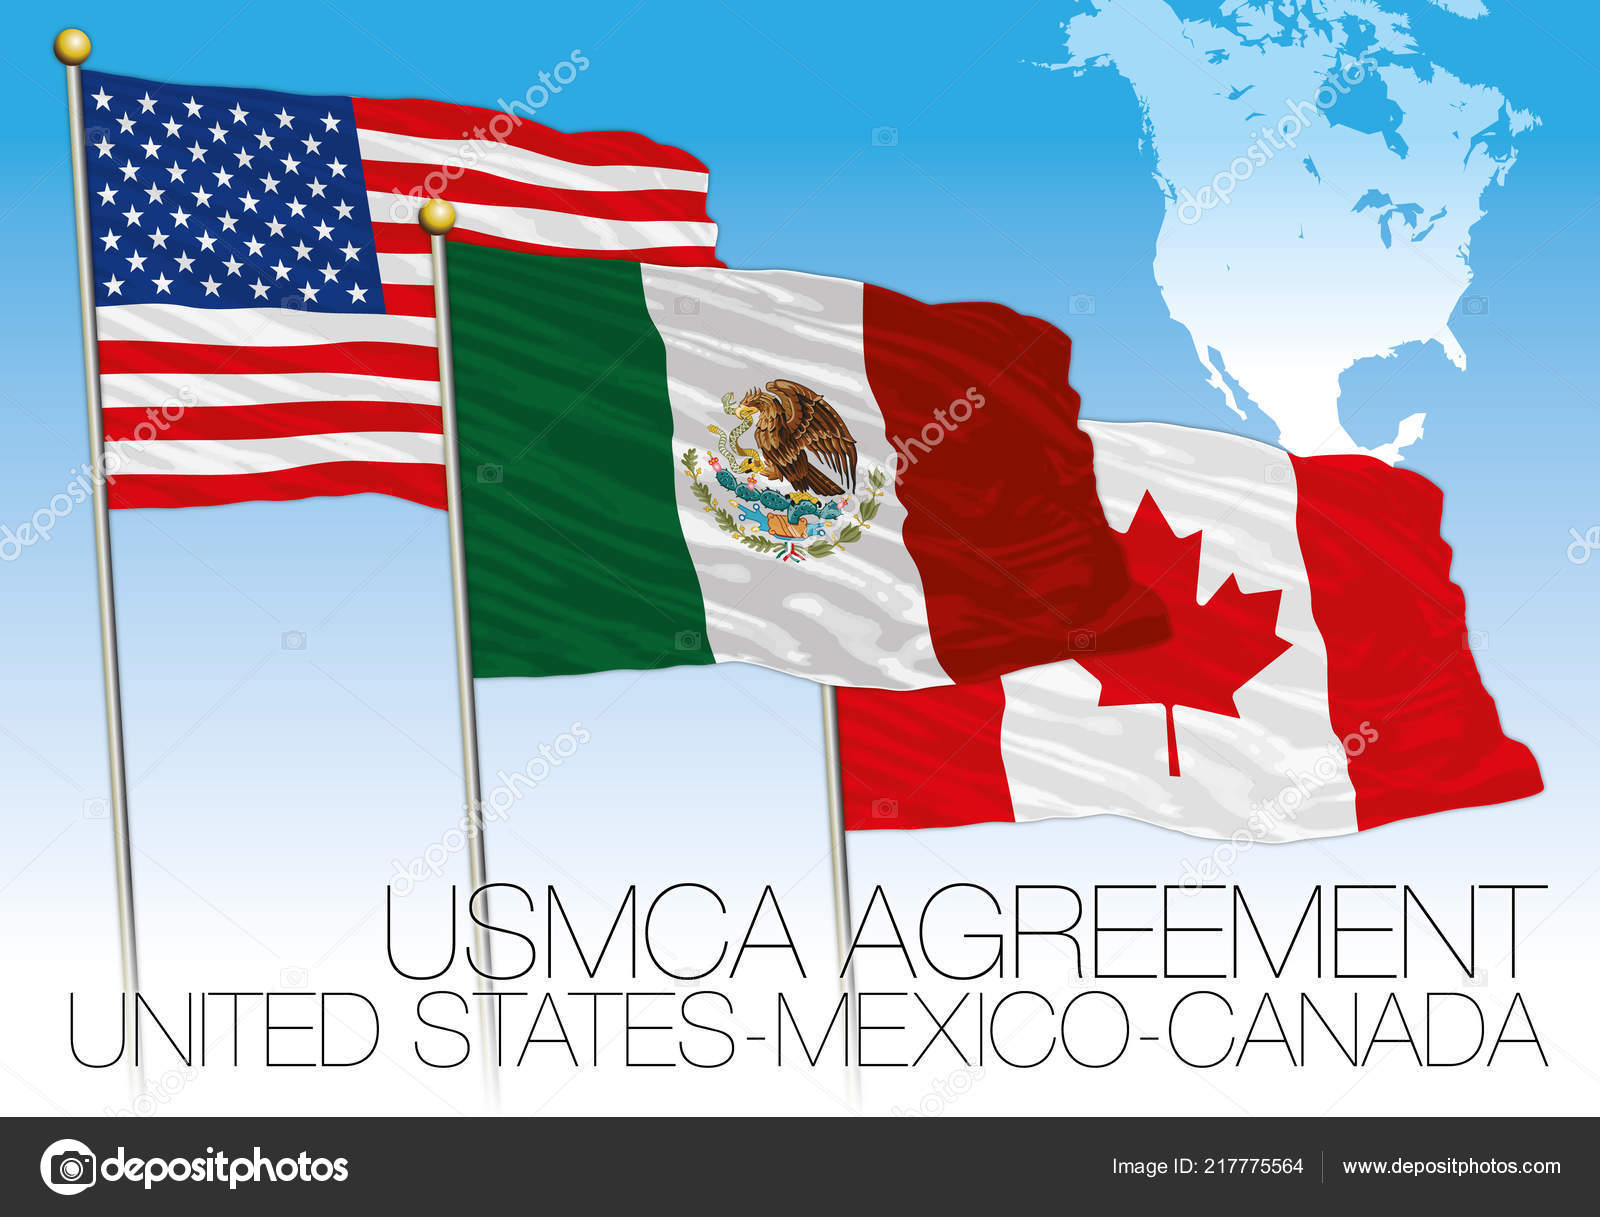 Usmca Agreement 2018 Flags United States Mexico Canada ...